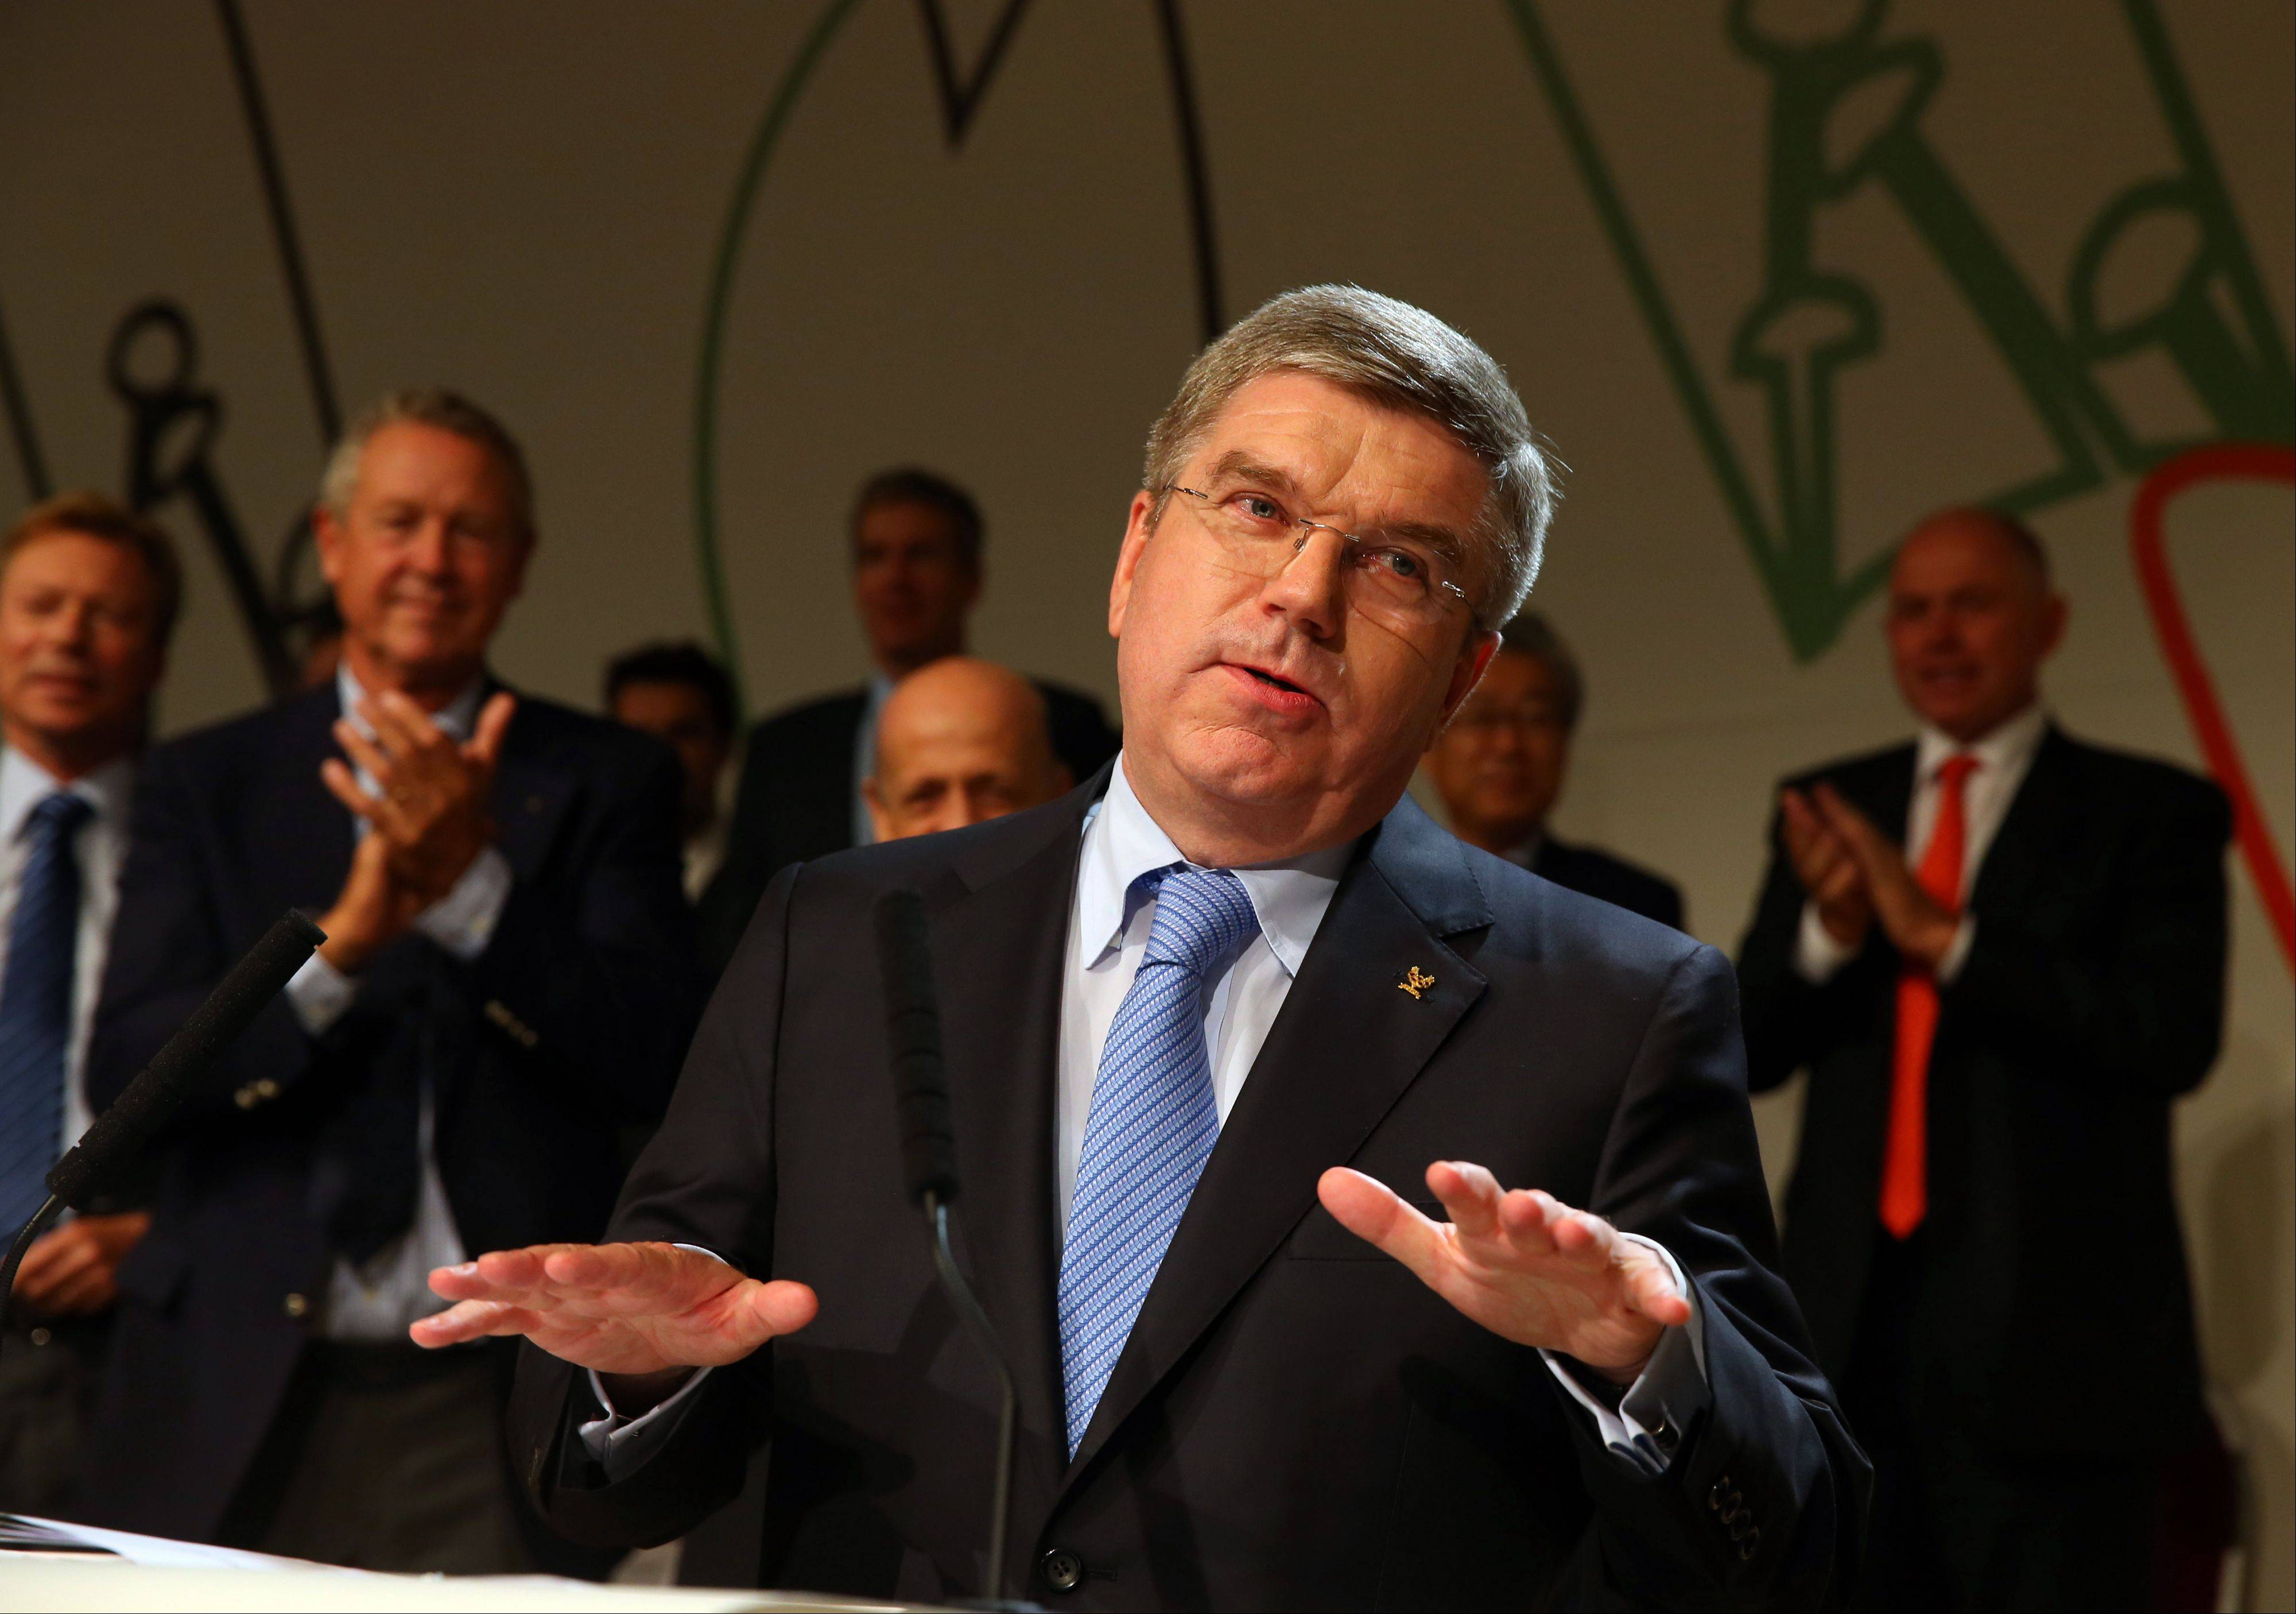 Thomas Bach, of Germany, speaks after being elected the new IOC president during the 125th IOC session in Buenos Aires, Argentina, Tuesday, Sept. 10, 2013.